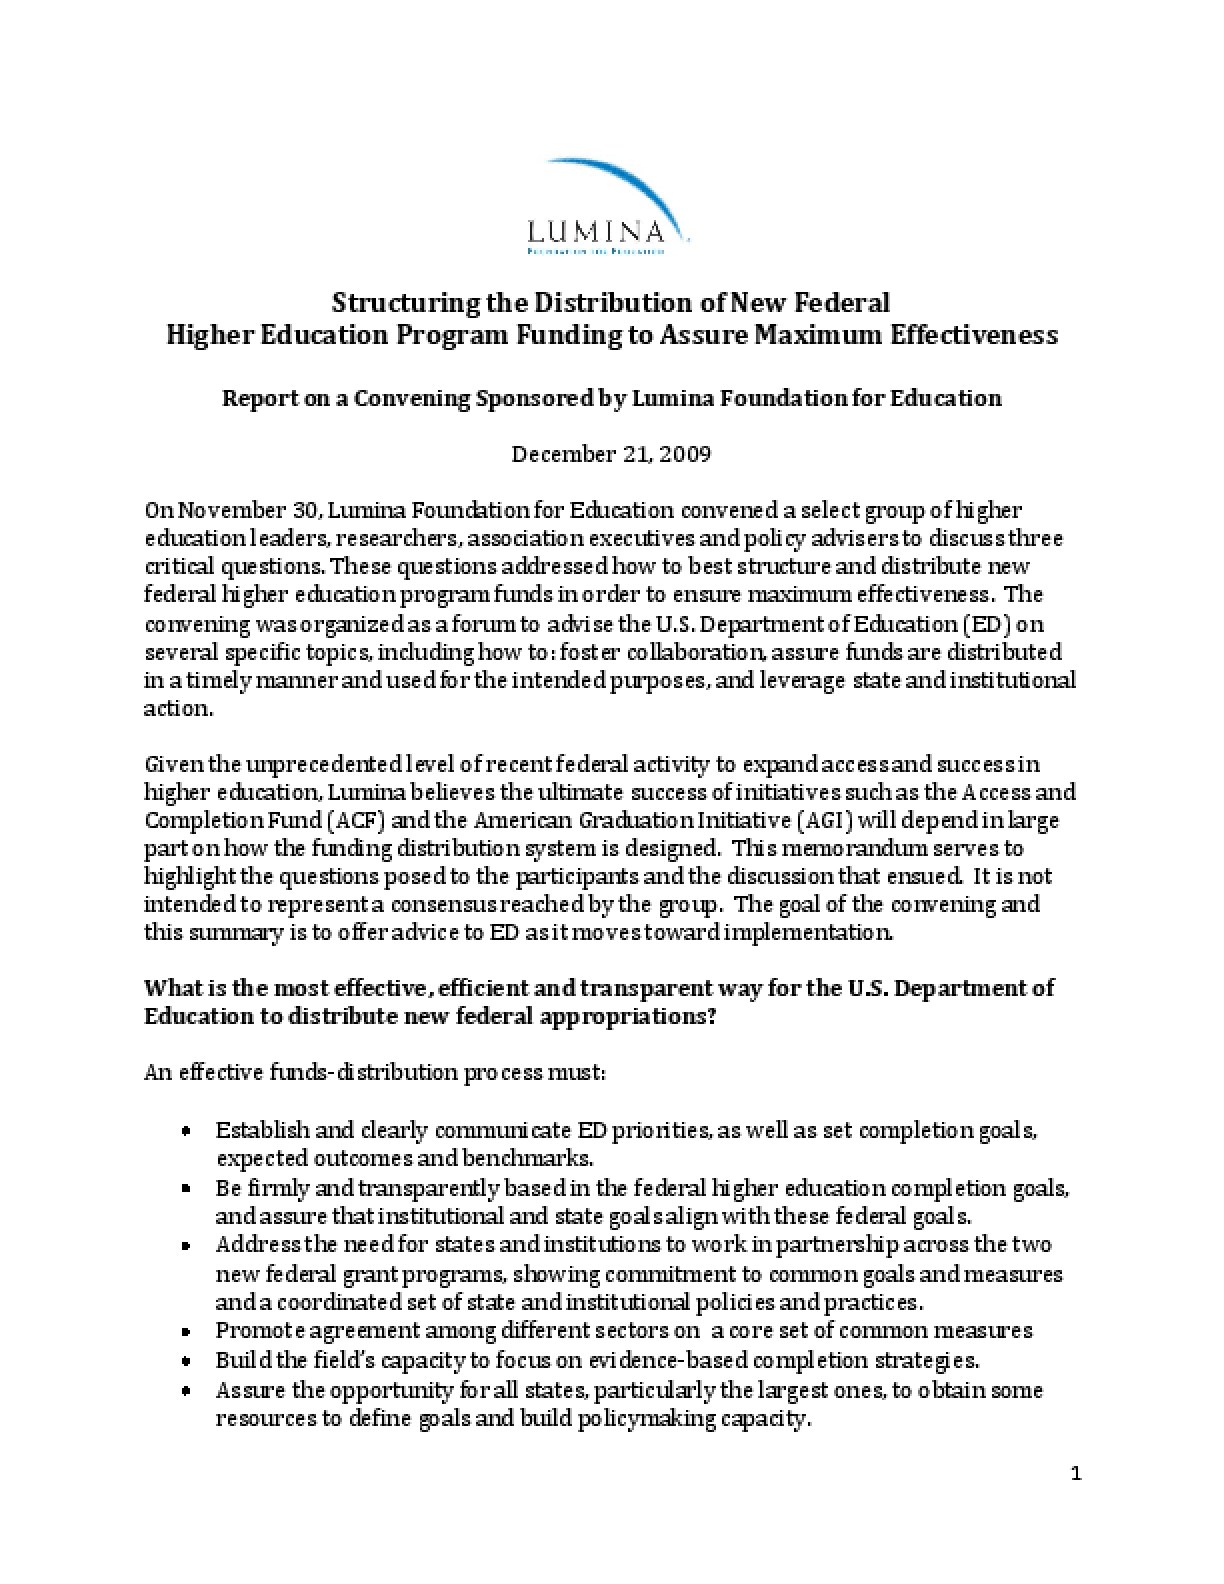 Structuring the Distribution of New Federal Higher Education Program Funding to Assure Maximum Effectiveness